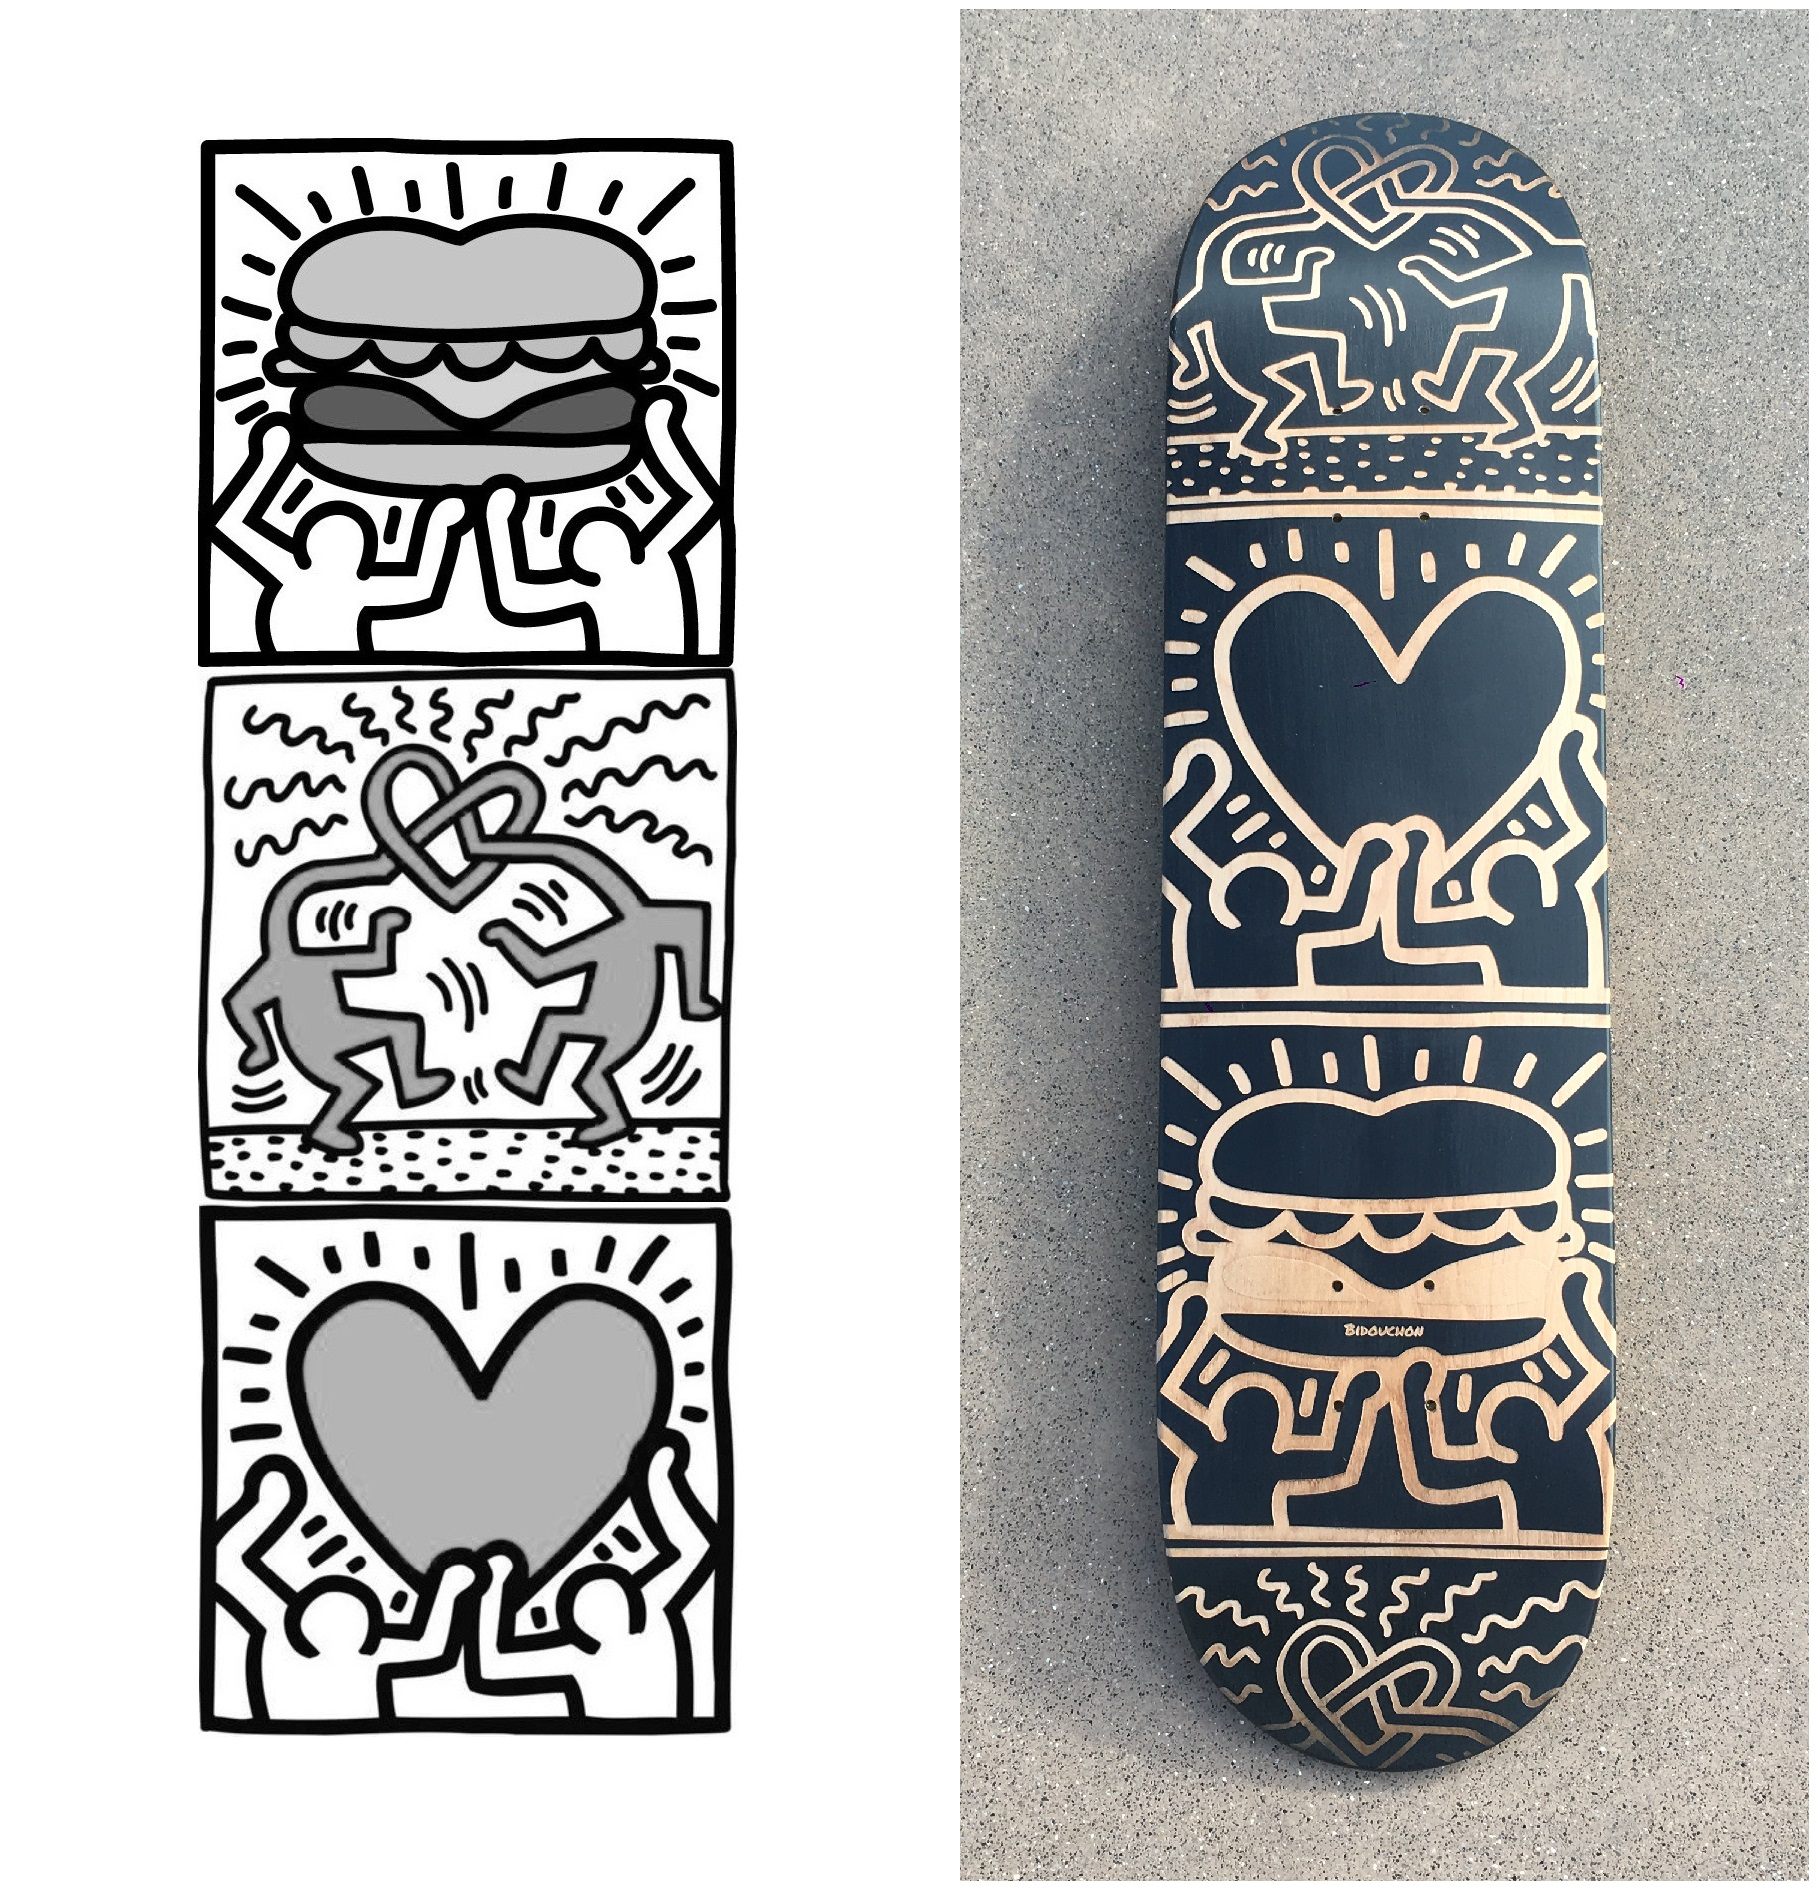 The file of the customisation worked on Photoshop and the result on a skateboard with the laser engraving technic